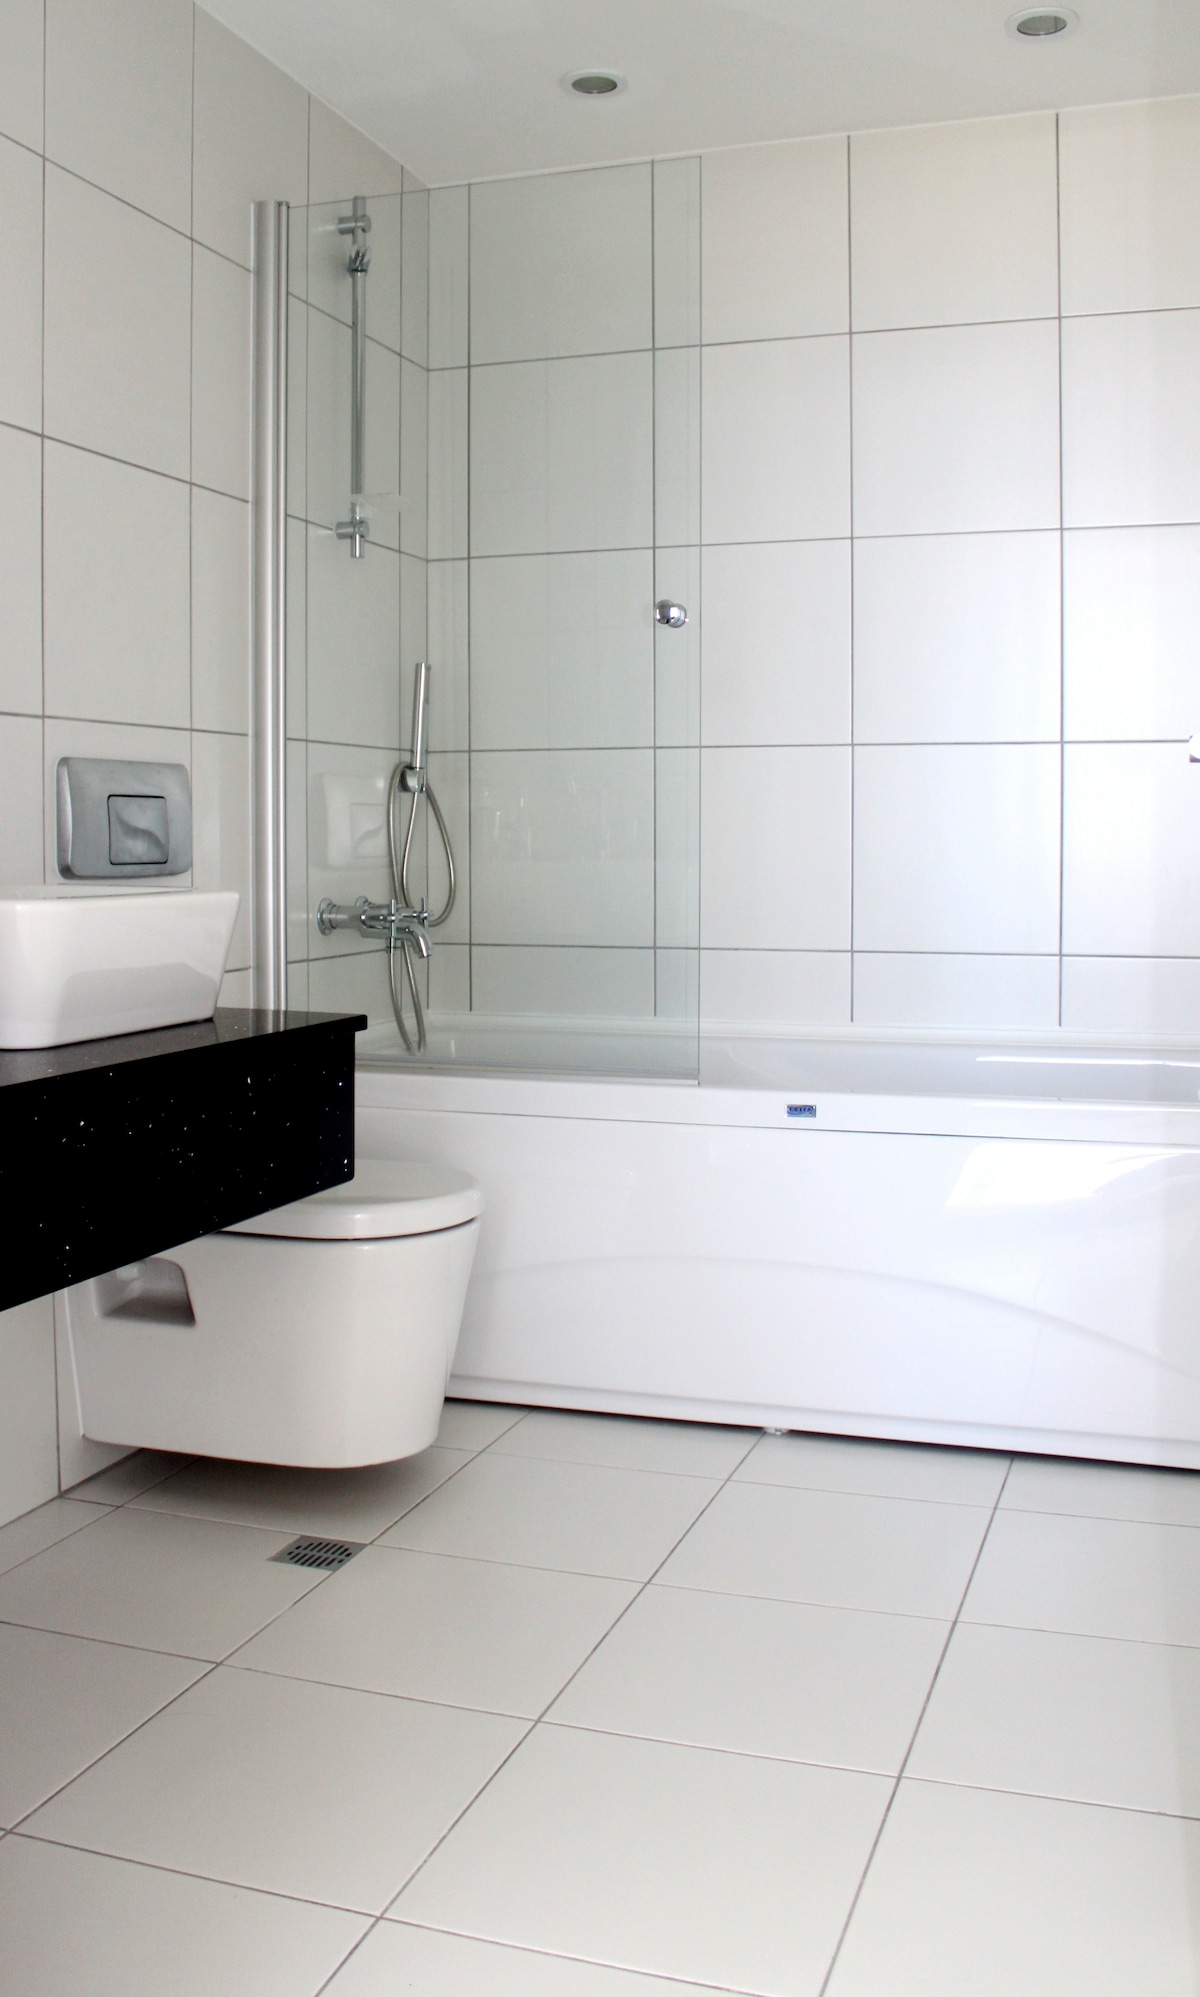 En-suite Bathroom with bath and shower